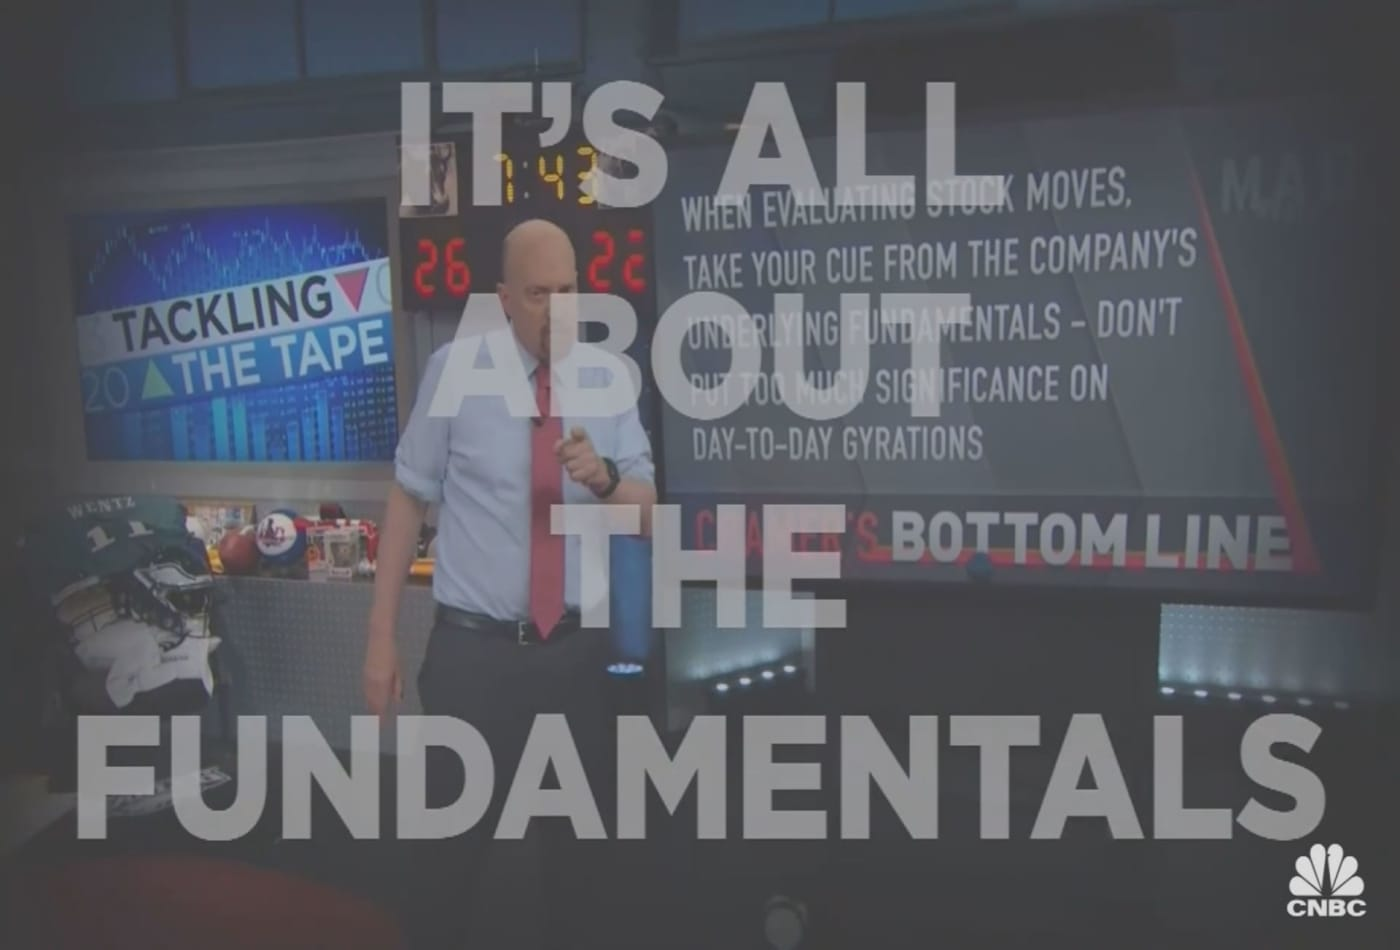 Cramer Remix: The fundamentals of evaluating stock moves